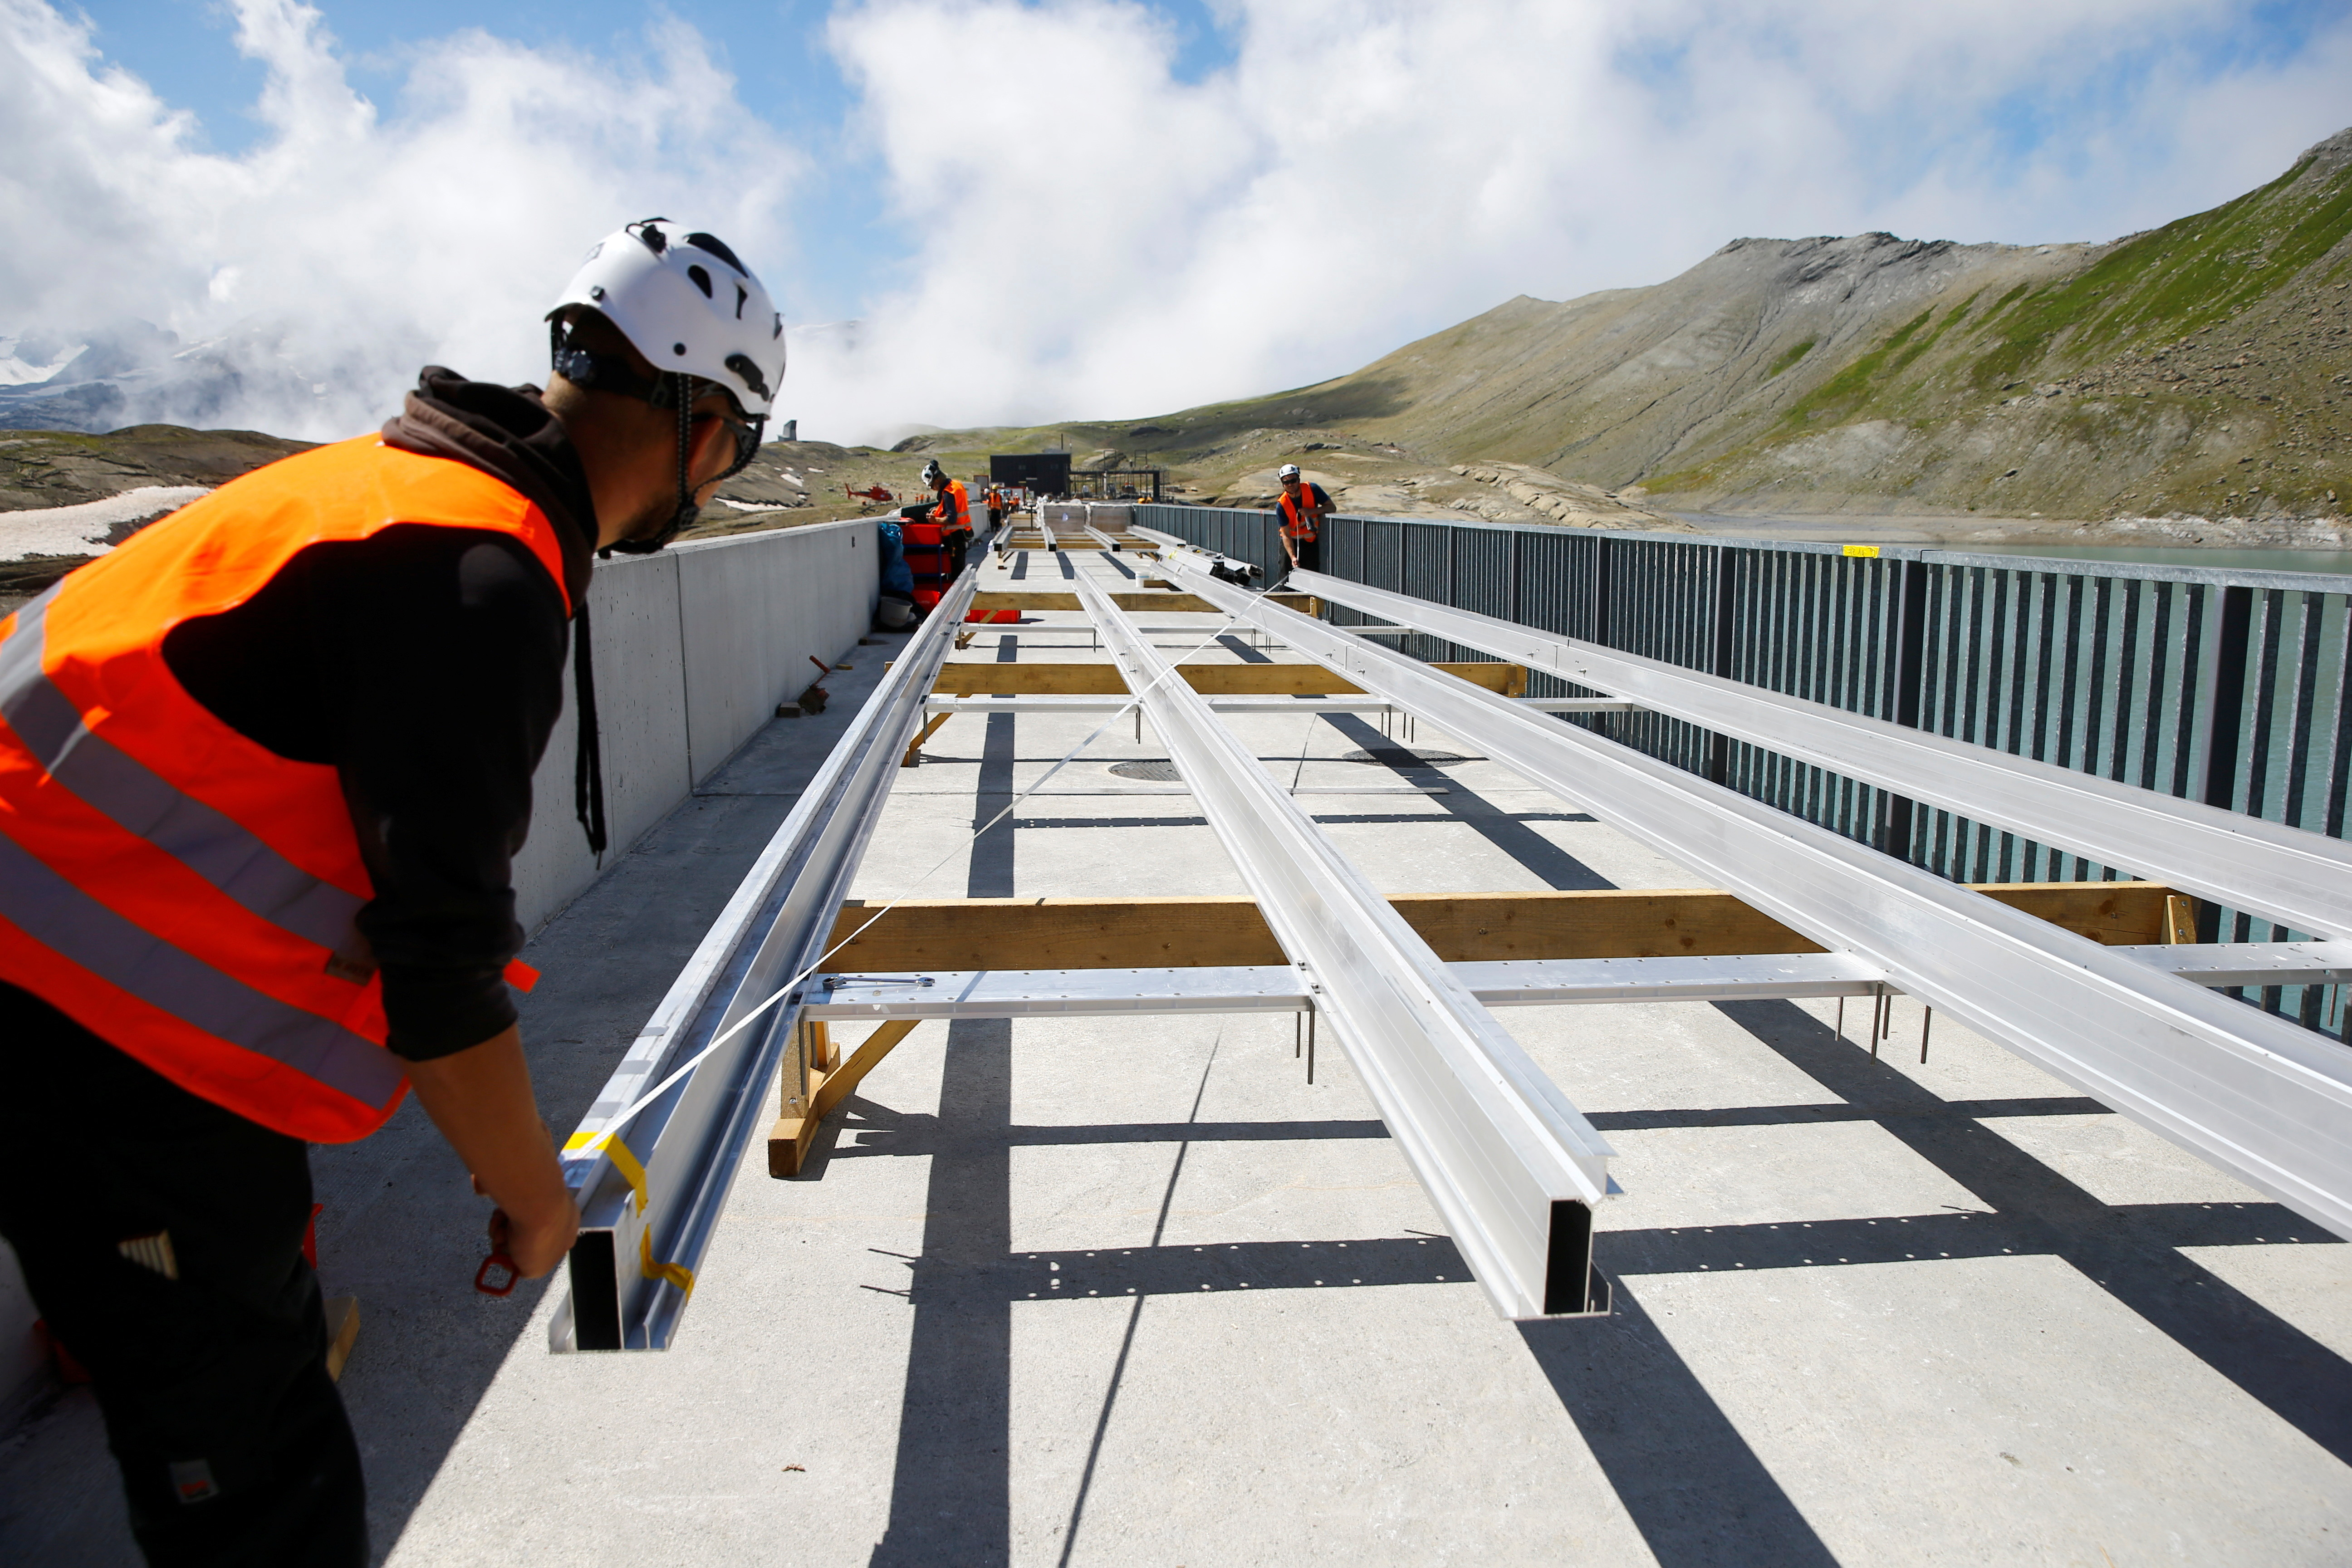 Workers measure a suspension for solar panels at the construction site of a large-scale photovoltaic system of Swiss energy provider Axpo at some 2500 metres above sea level on the dam of Lake Muttsee, Switzerland August 19, 2021. Picture taken August 19, 2021.   REUTERS/Arnd Wiegmann - RC2D8P9NFNZ1